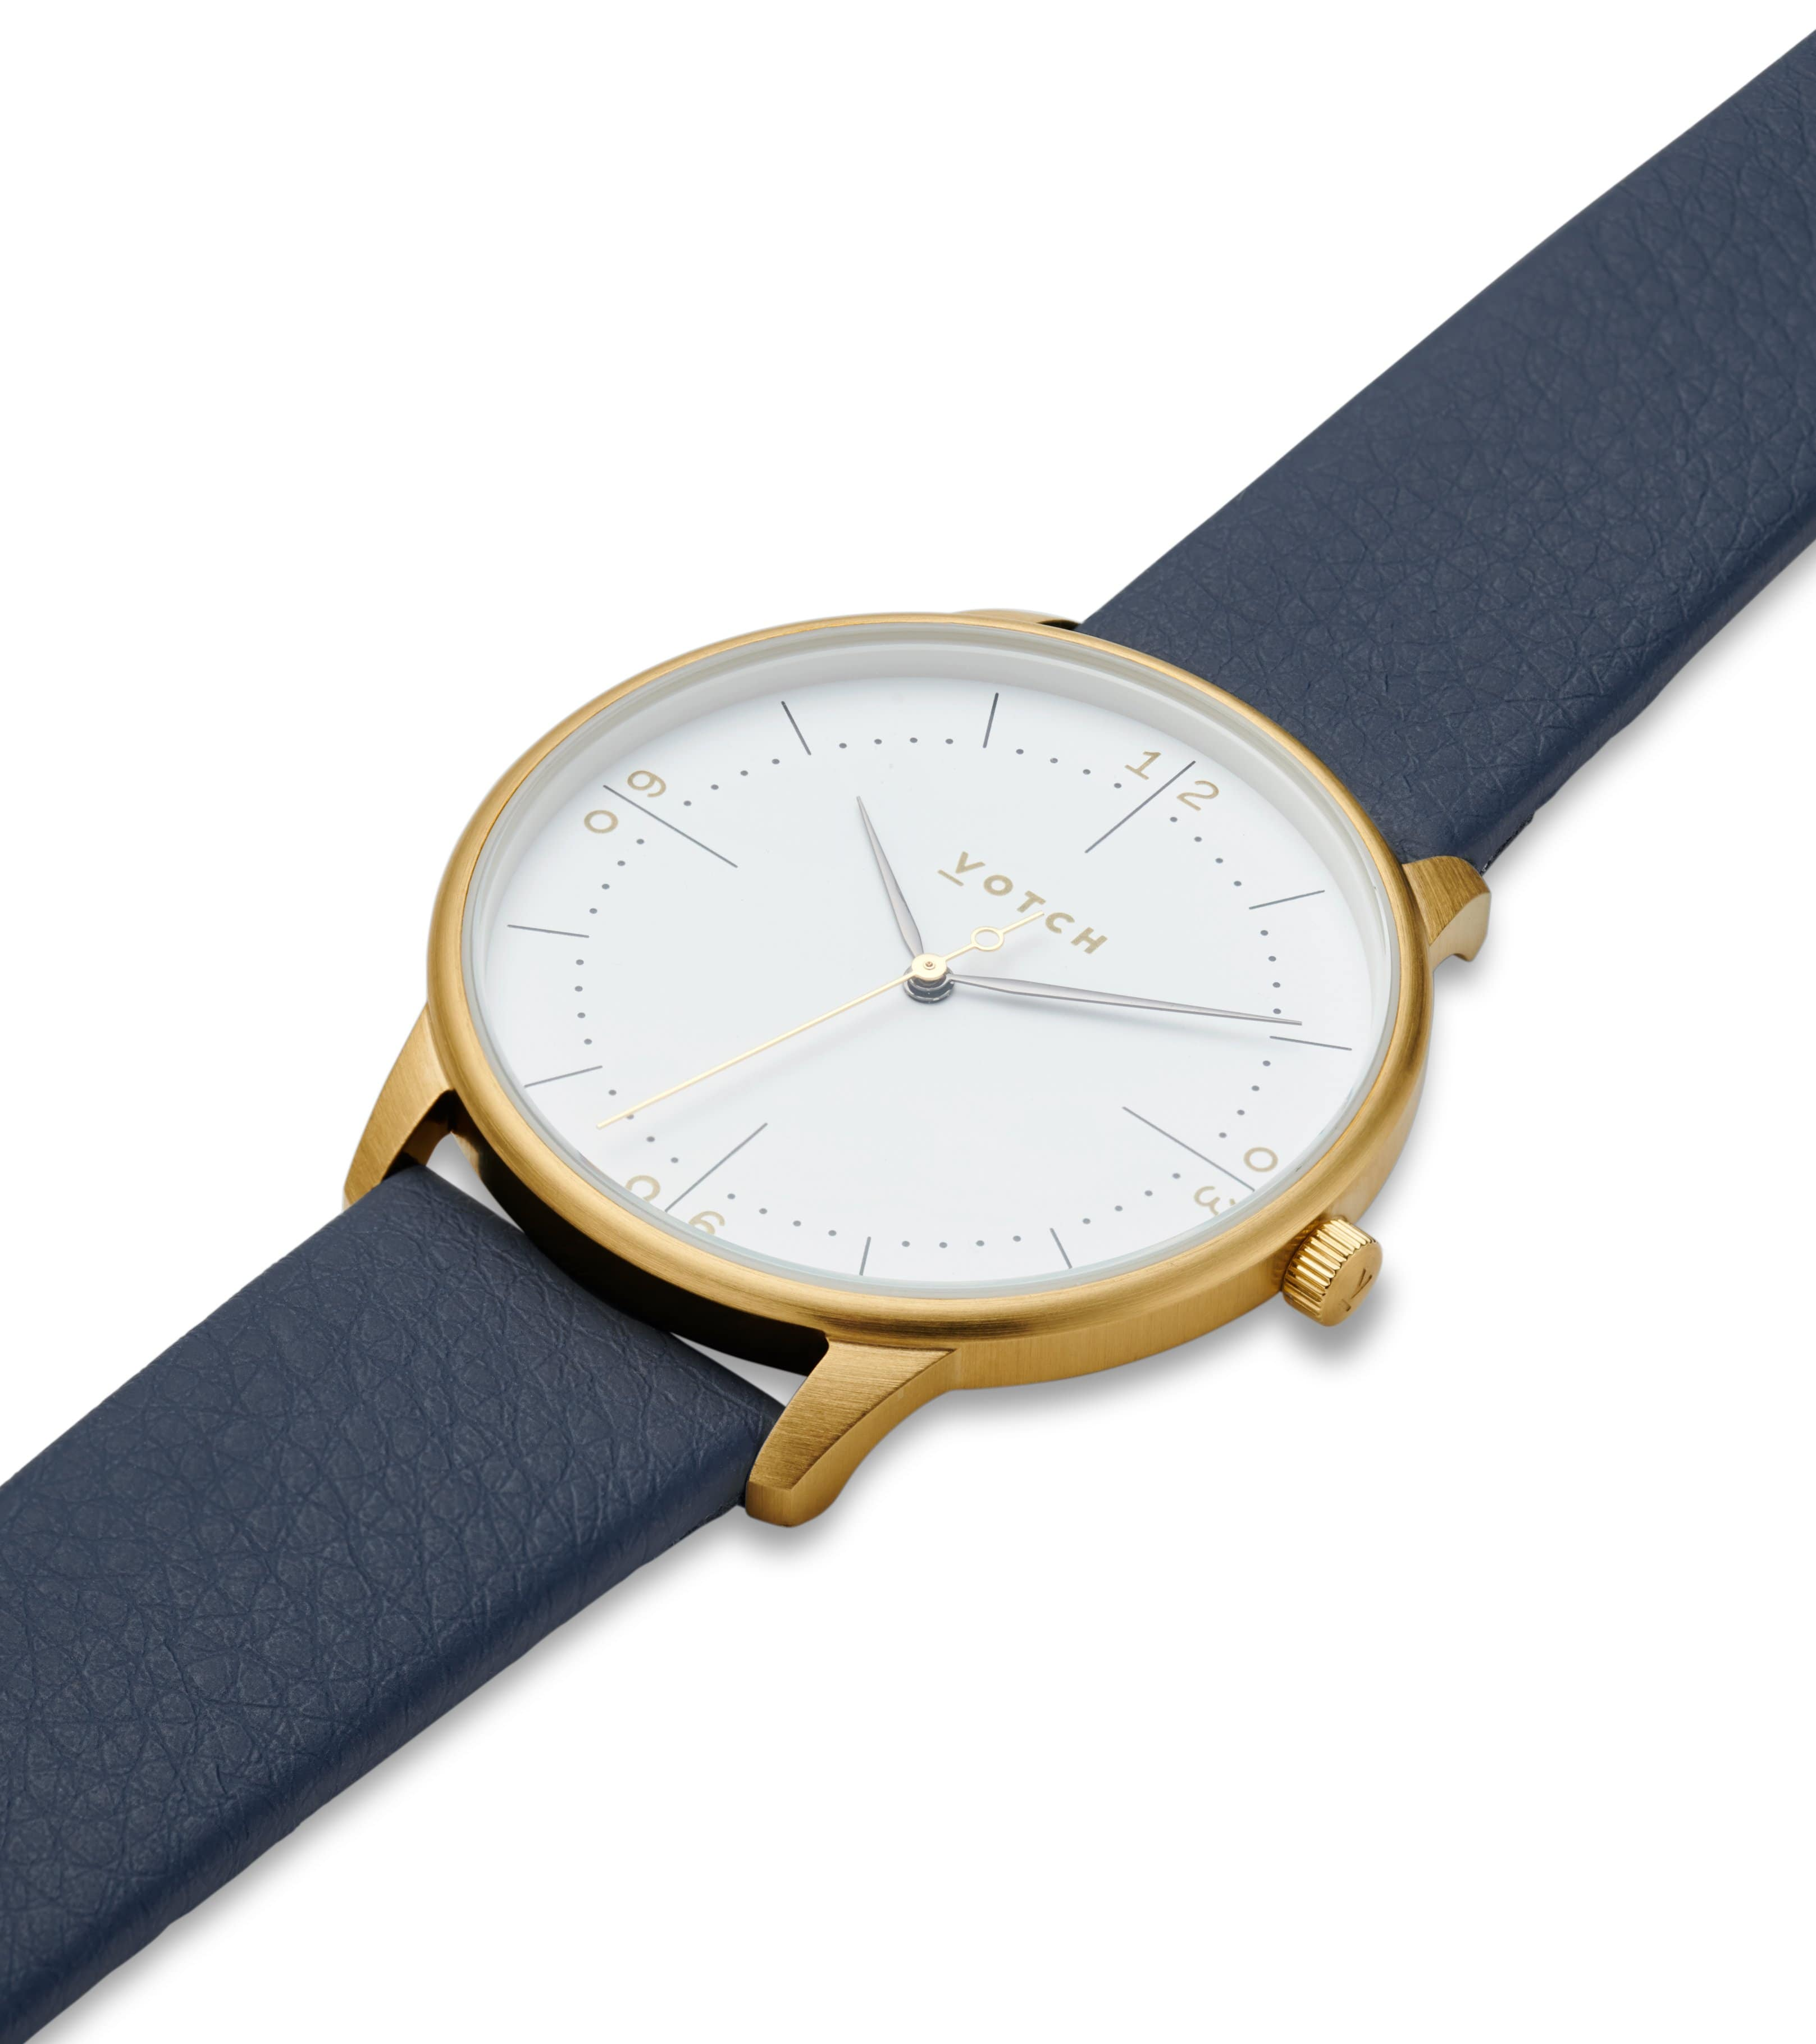 Gold & Navy | Aalto from Votch